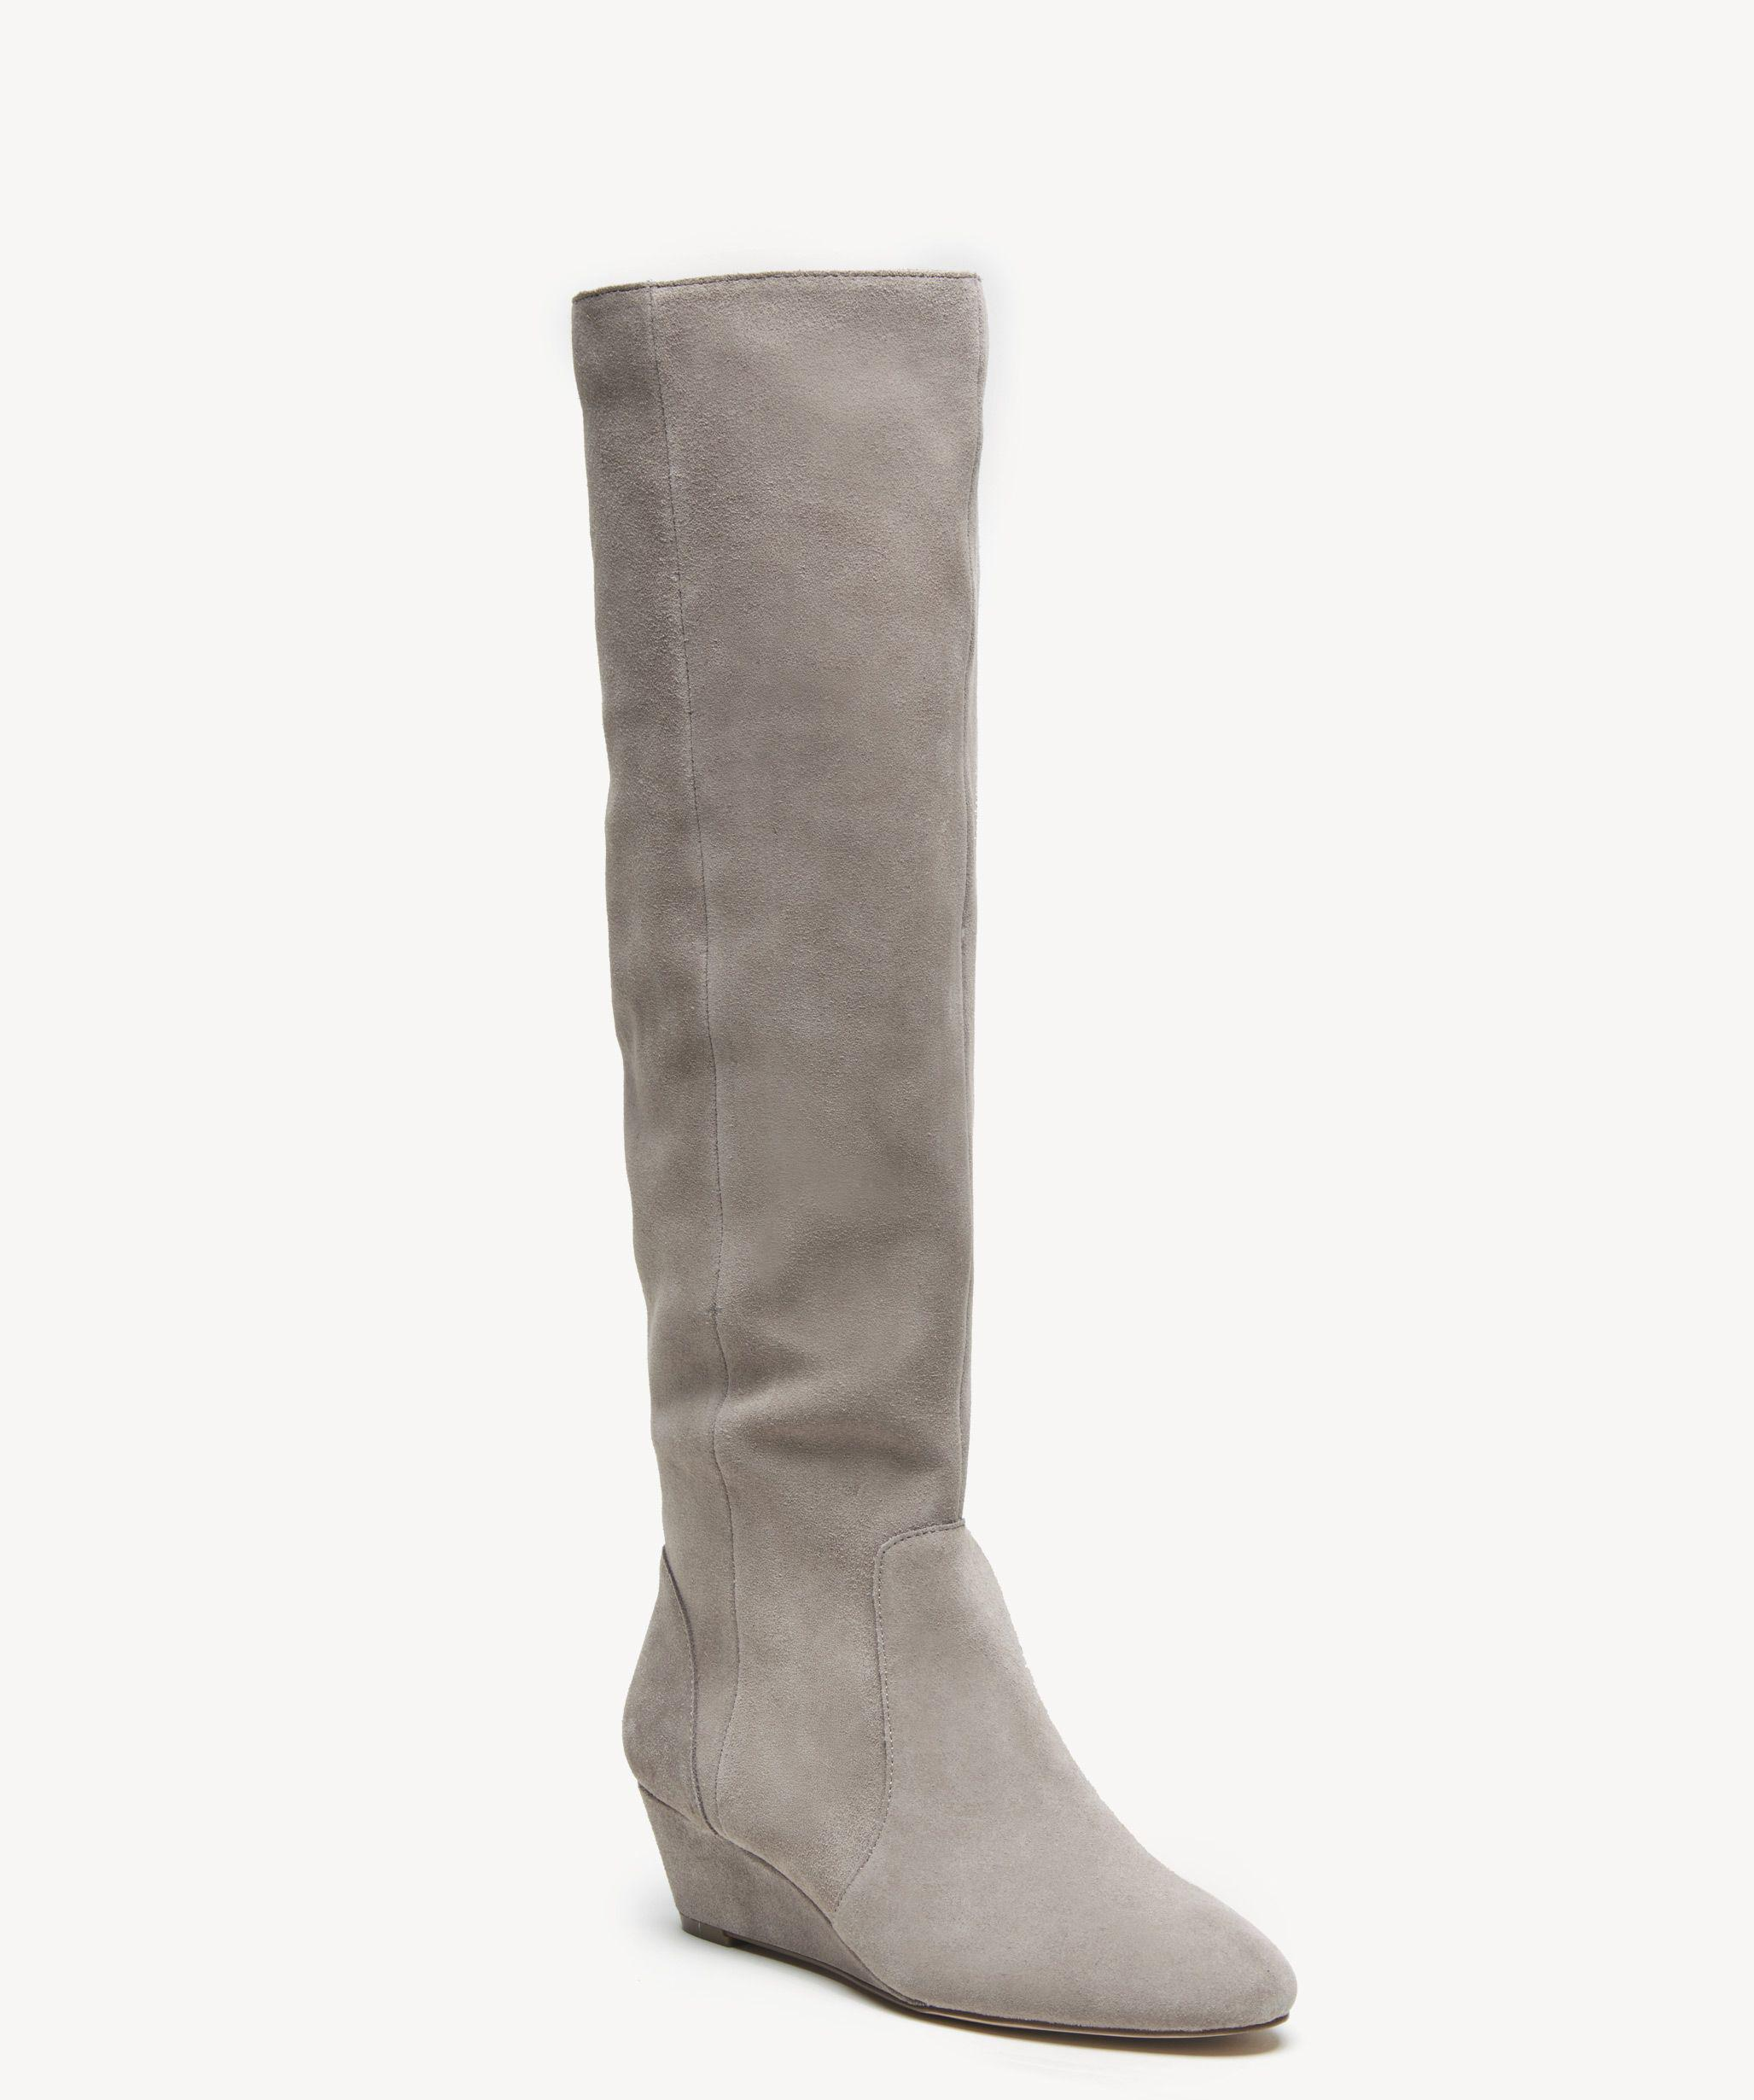 ae76ab8e62e Lyst - Sole Society Aileena Wedge Boot in Gray